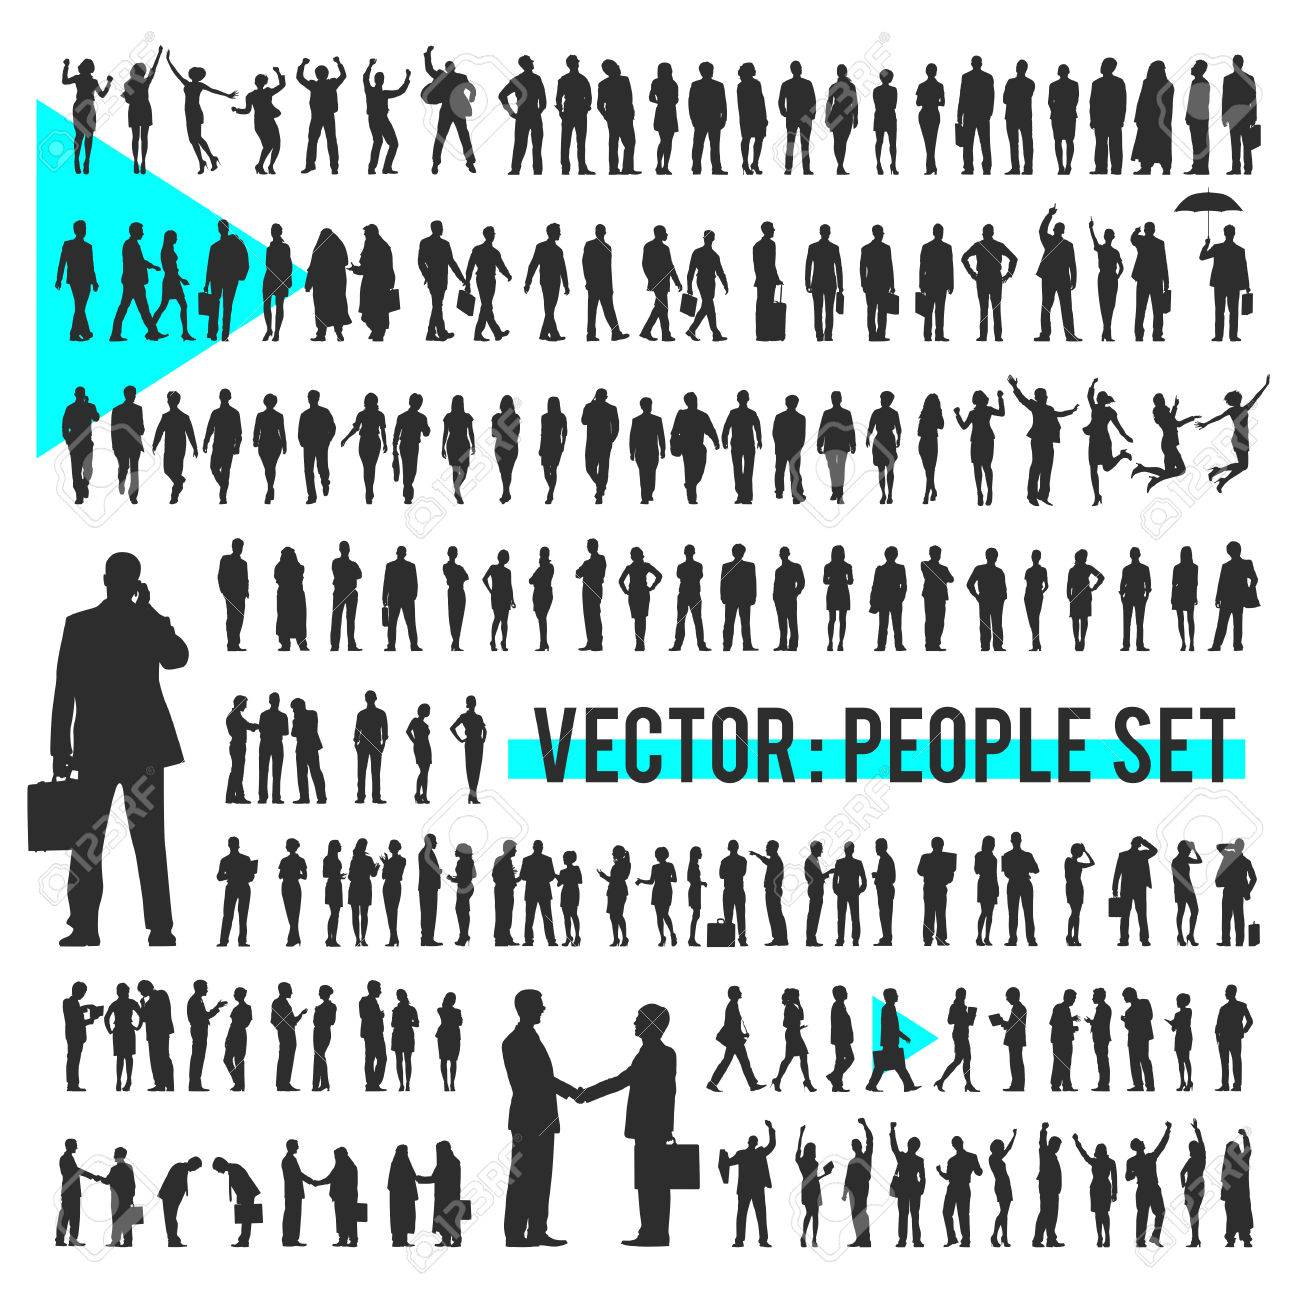 Vector Business People Corporate Company Concept - 57620526